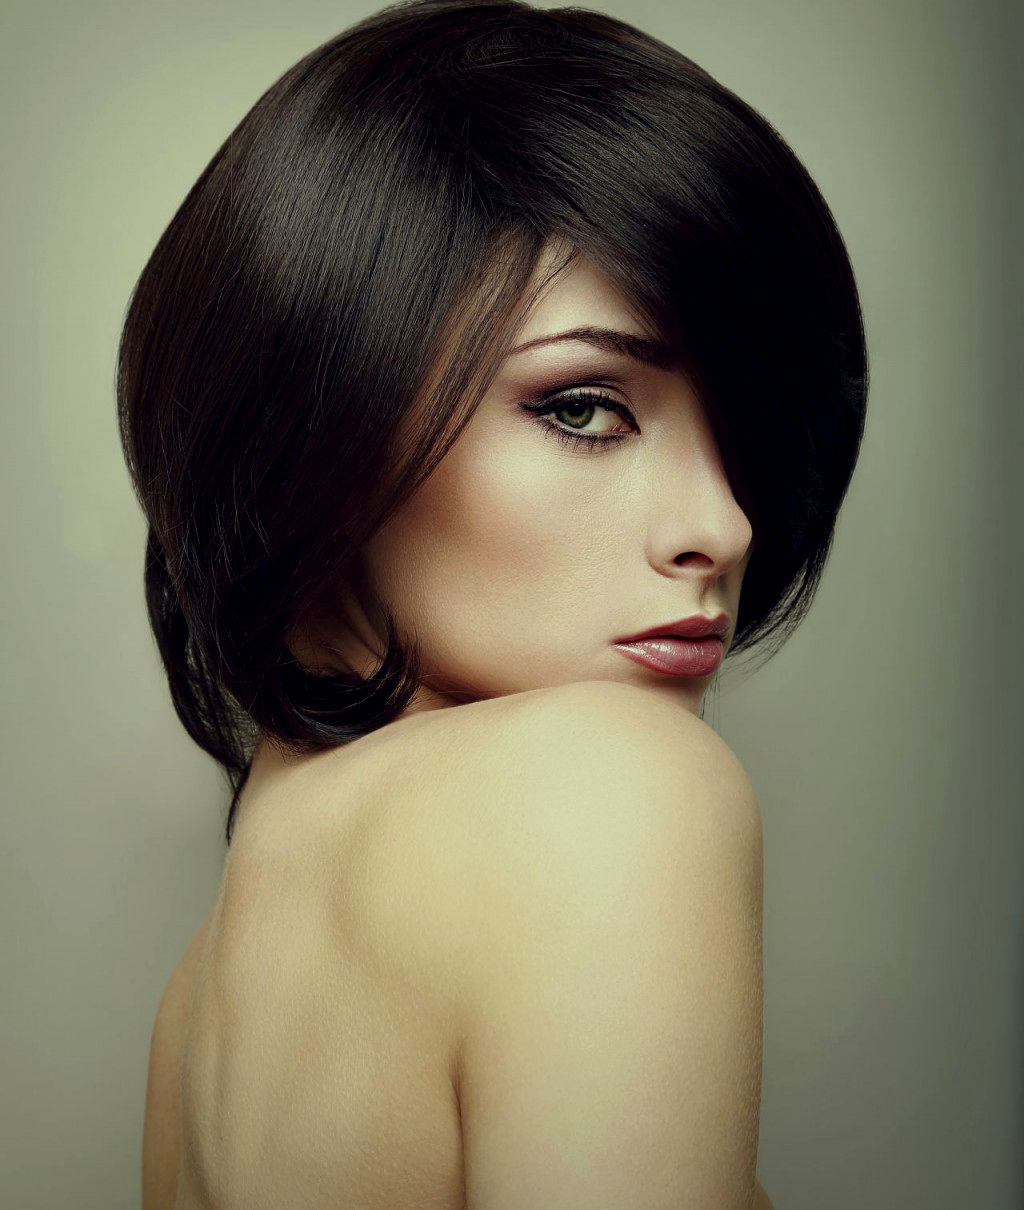 new girls short hairstyles photo-luxury girls short hairstyles reviews